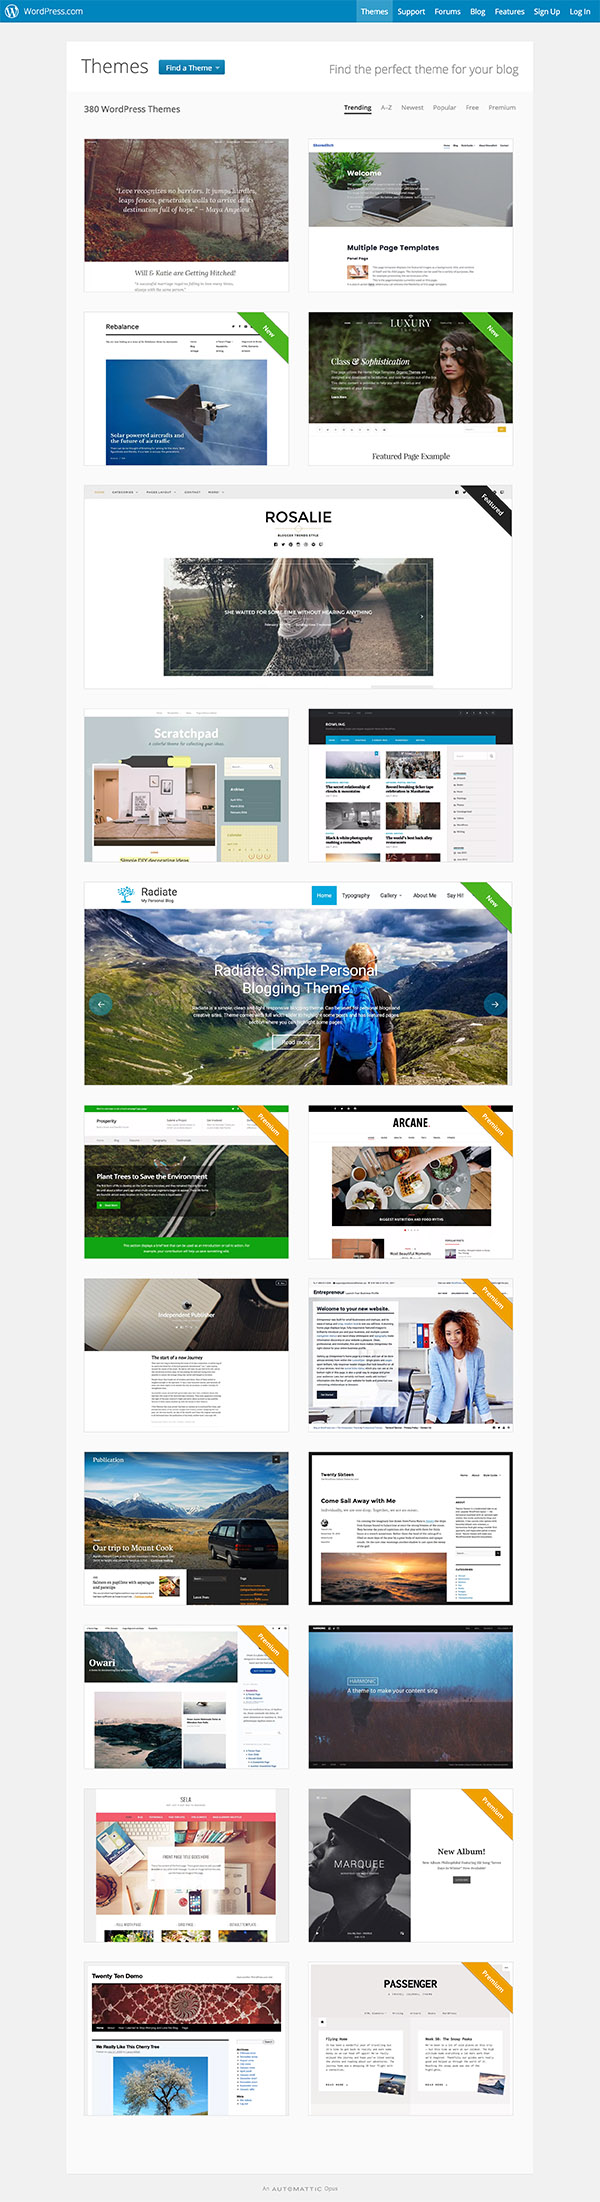 03 Theme WordPress